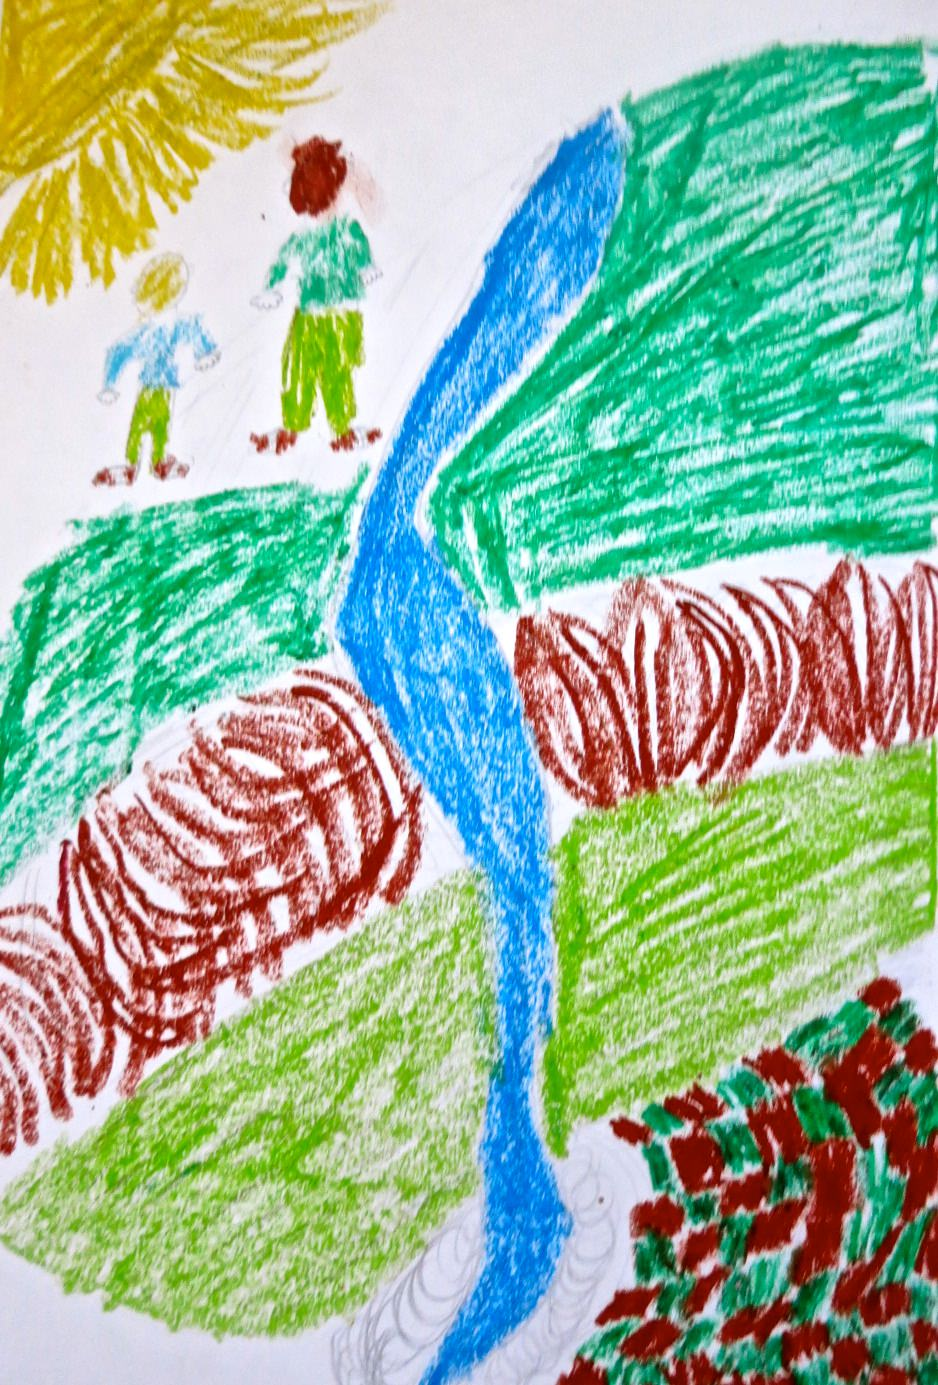 """""""We see the coil of the river through the valley."""" Illustration by George B-N, Year 8, Sompting Abbotts Preparatory School"""